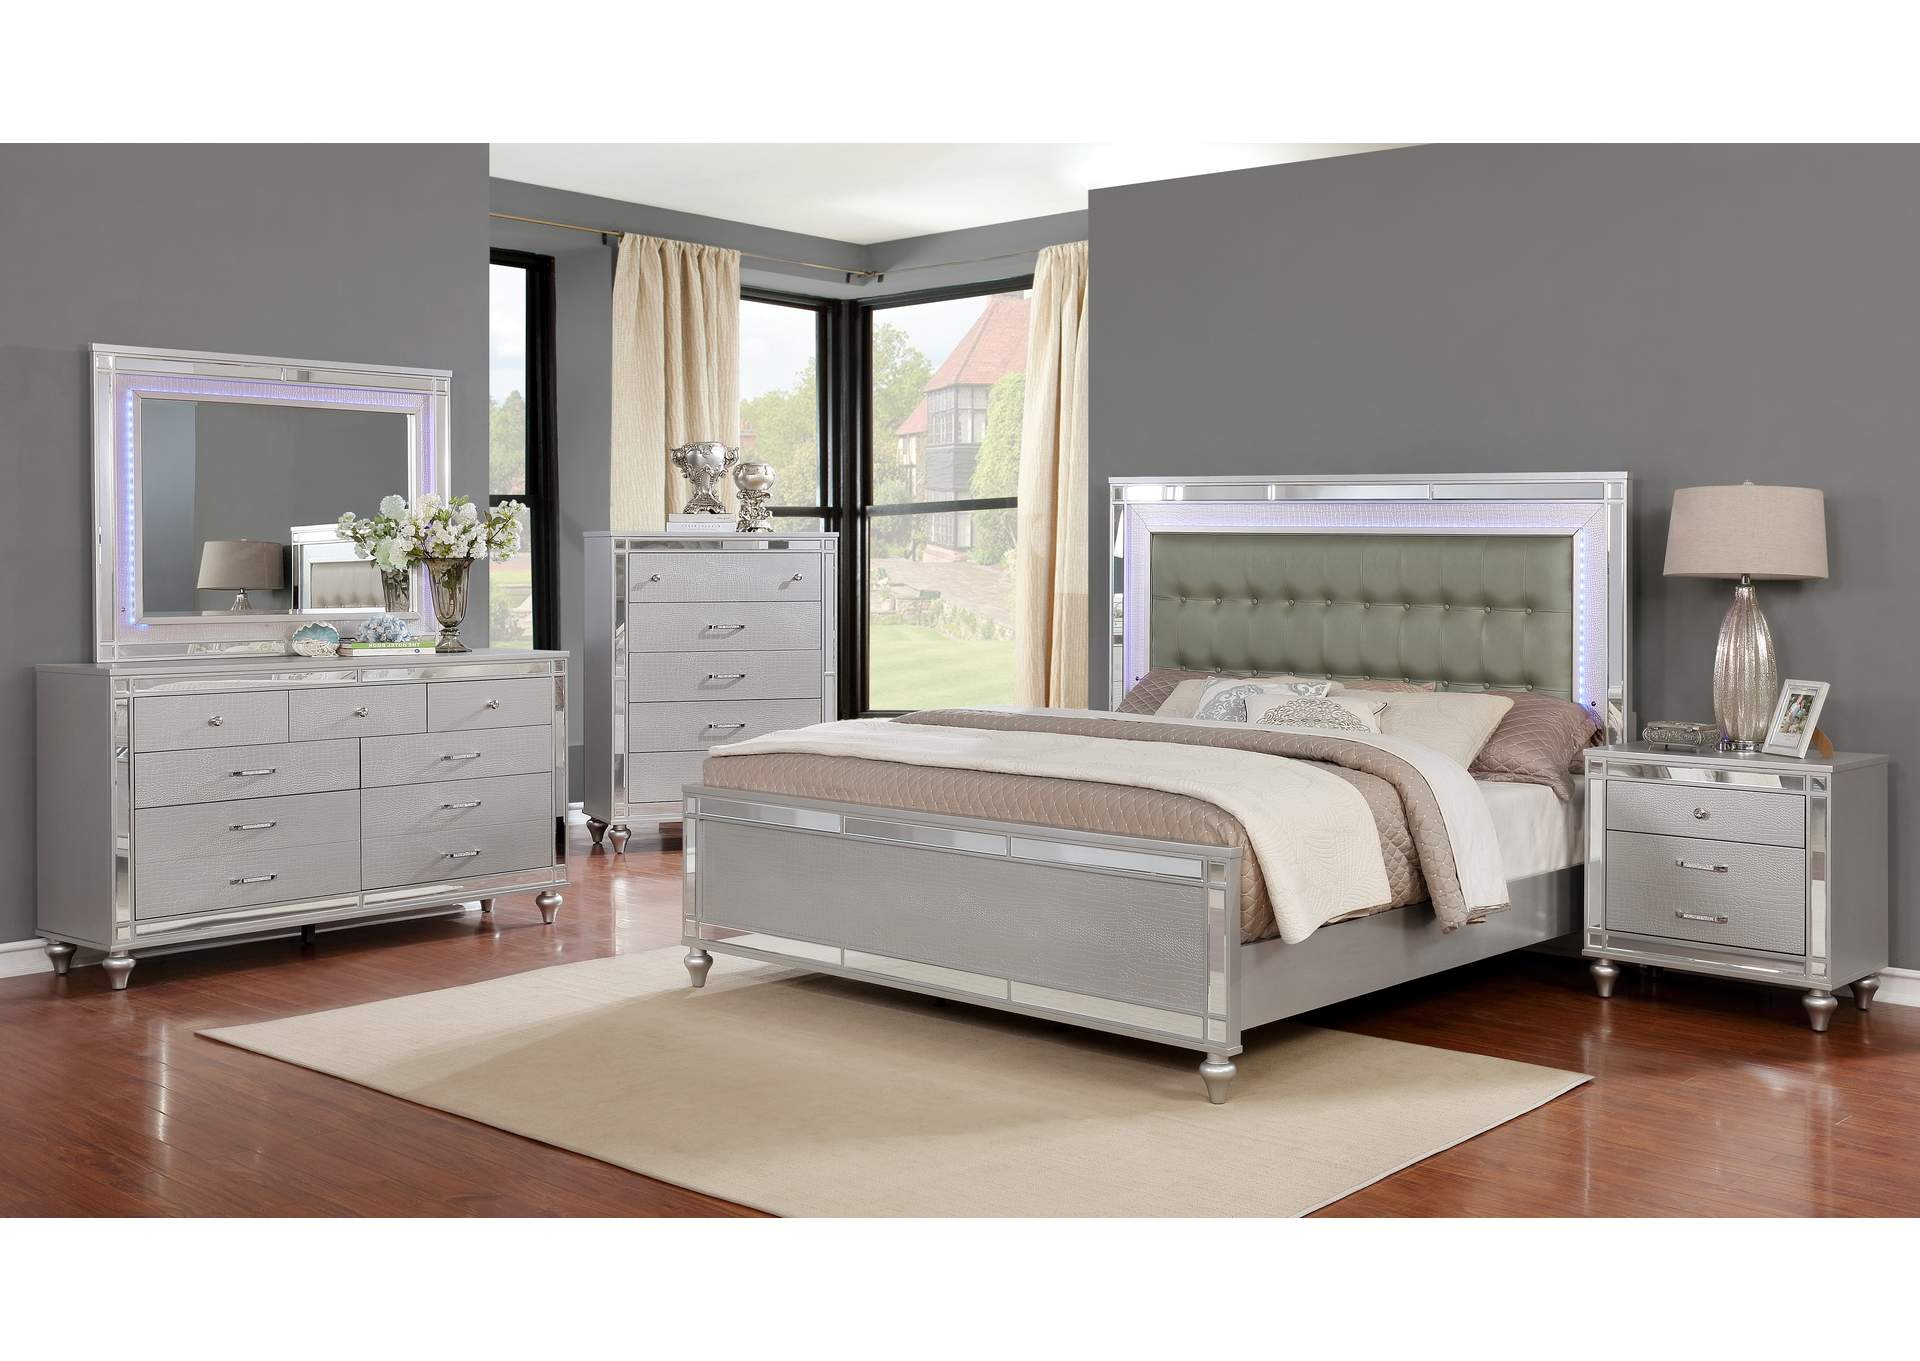 Halamay Silver Queen Bed,Global Trading